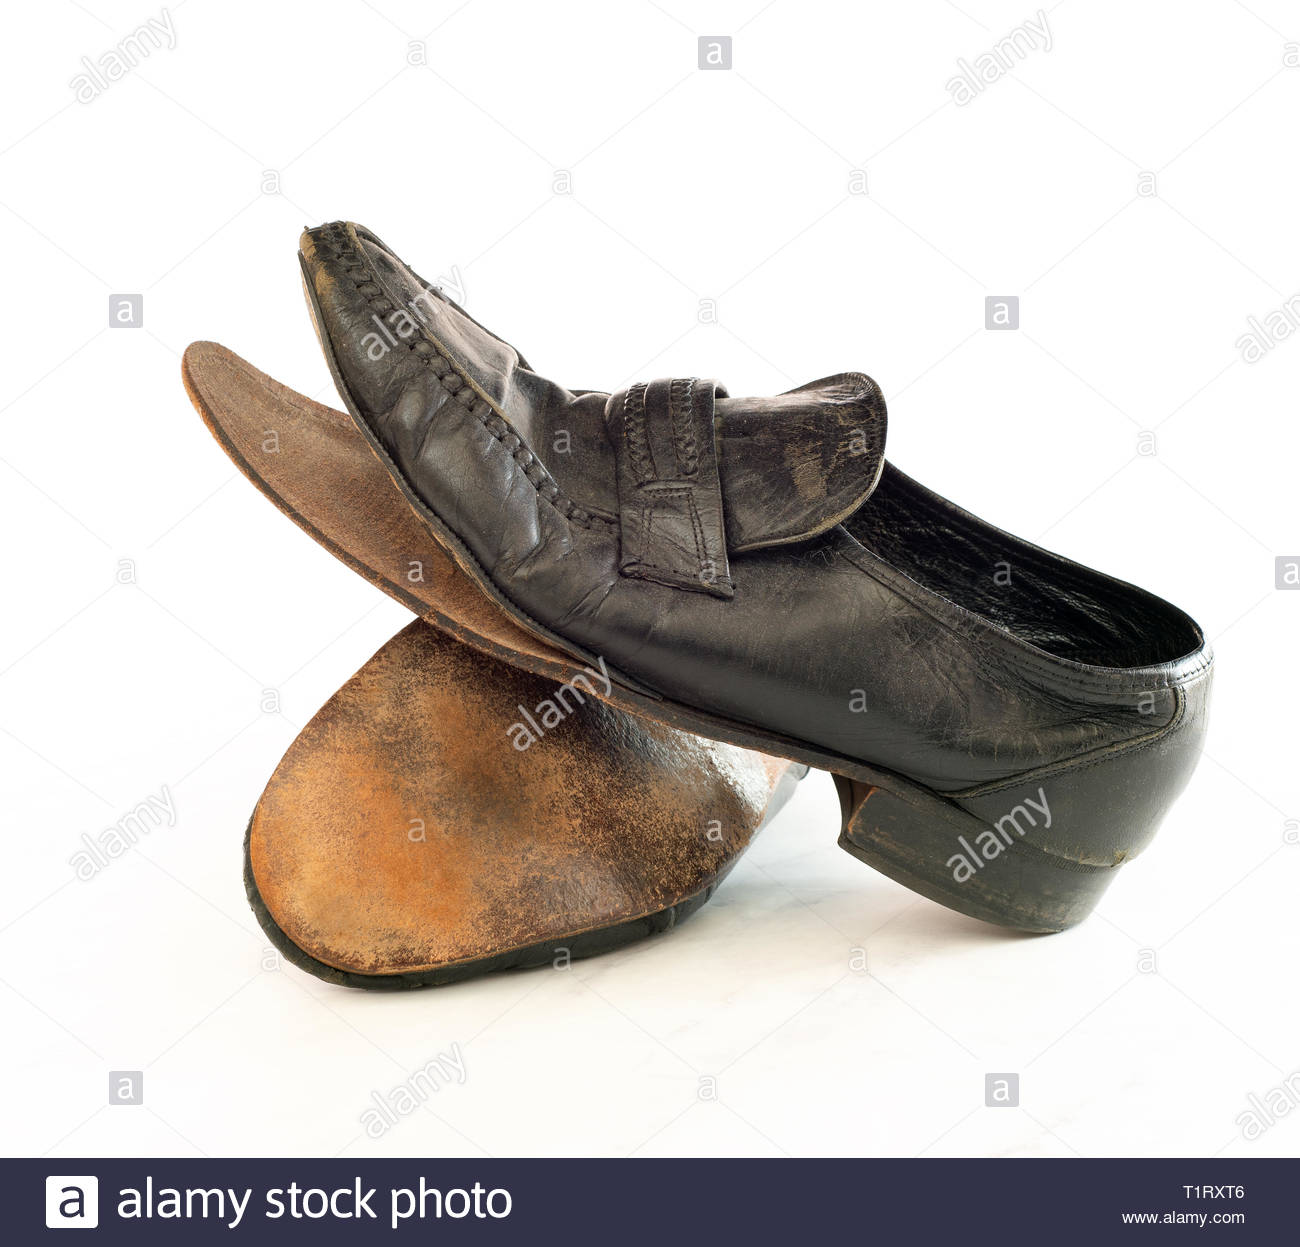 Old pair of Mens leather black dress shoes that are worn out, very dusty and dirty and falling apart.  They need polish and repair - Stock Image